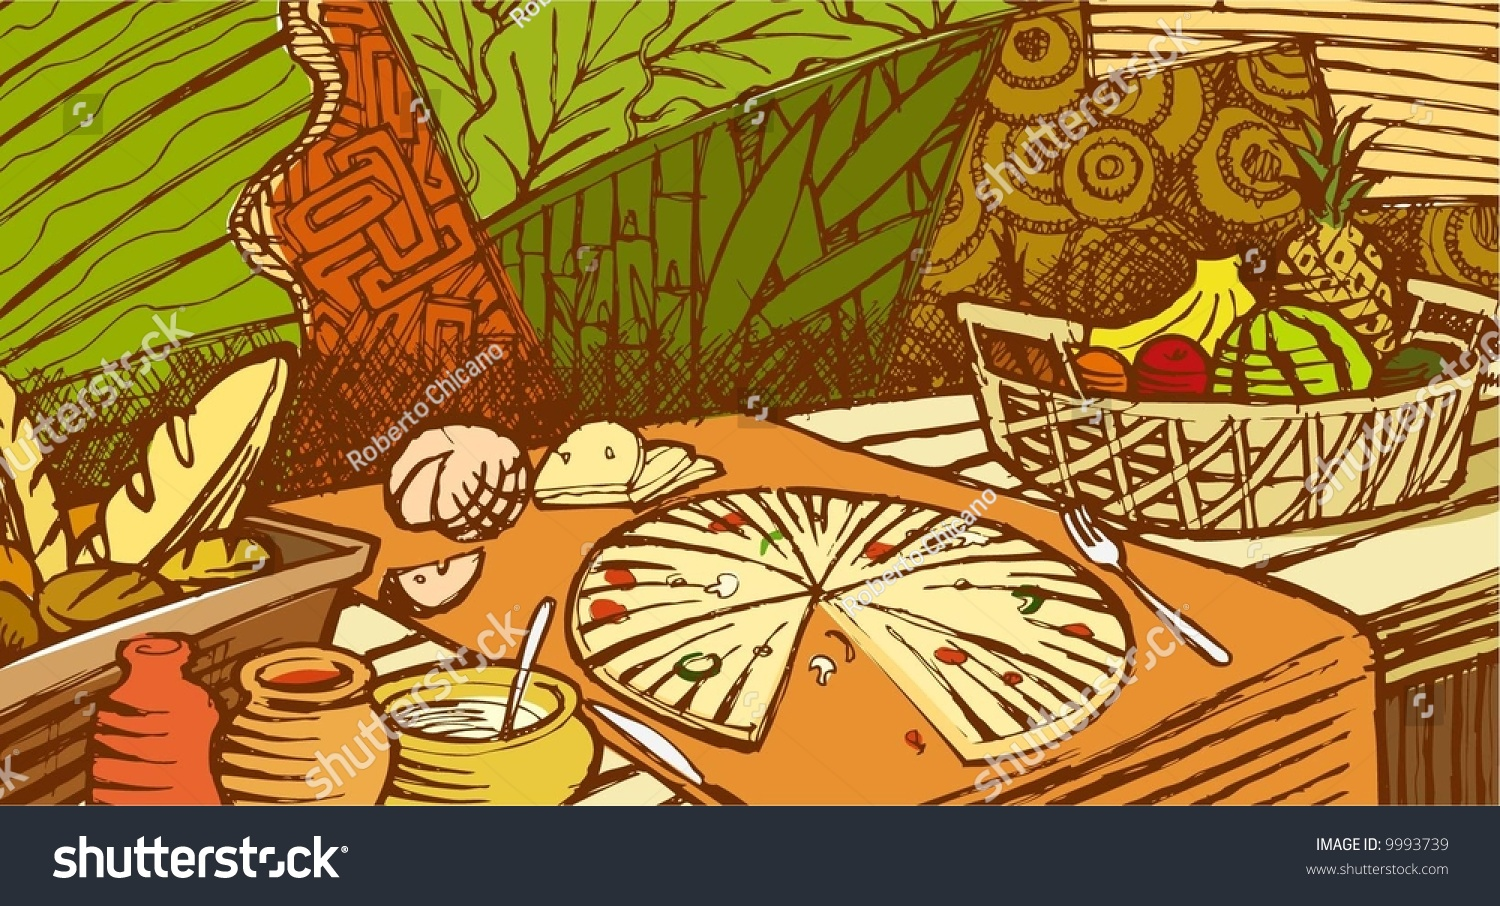 Food mural stock vector 9993739 shutterstock for Mural vector